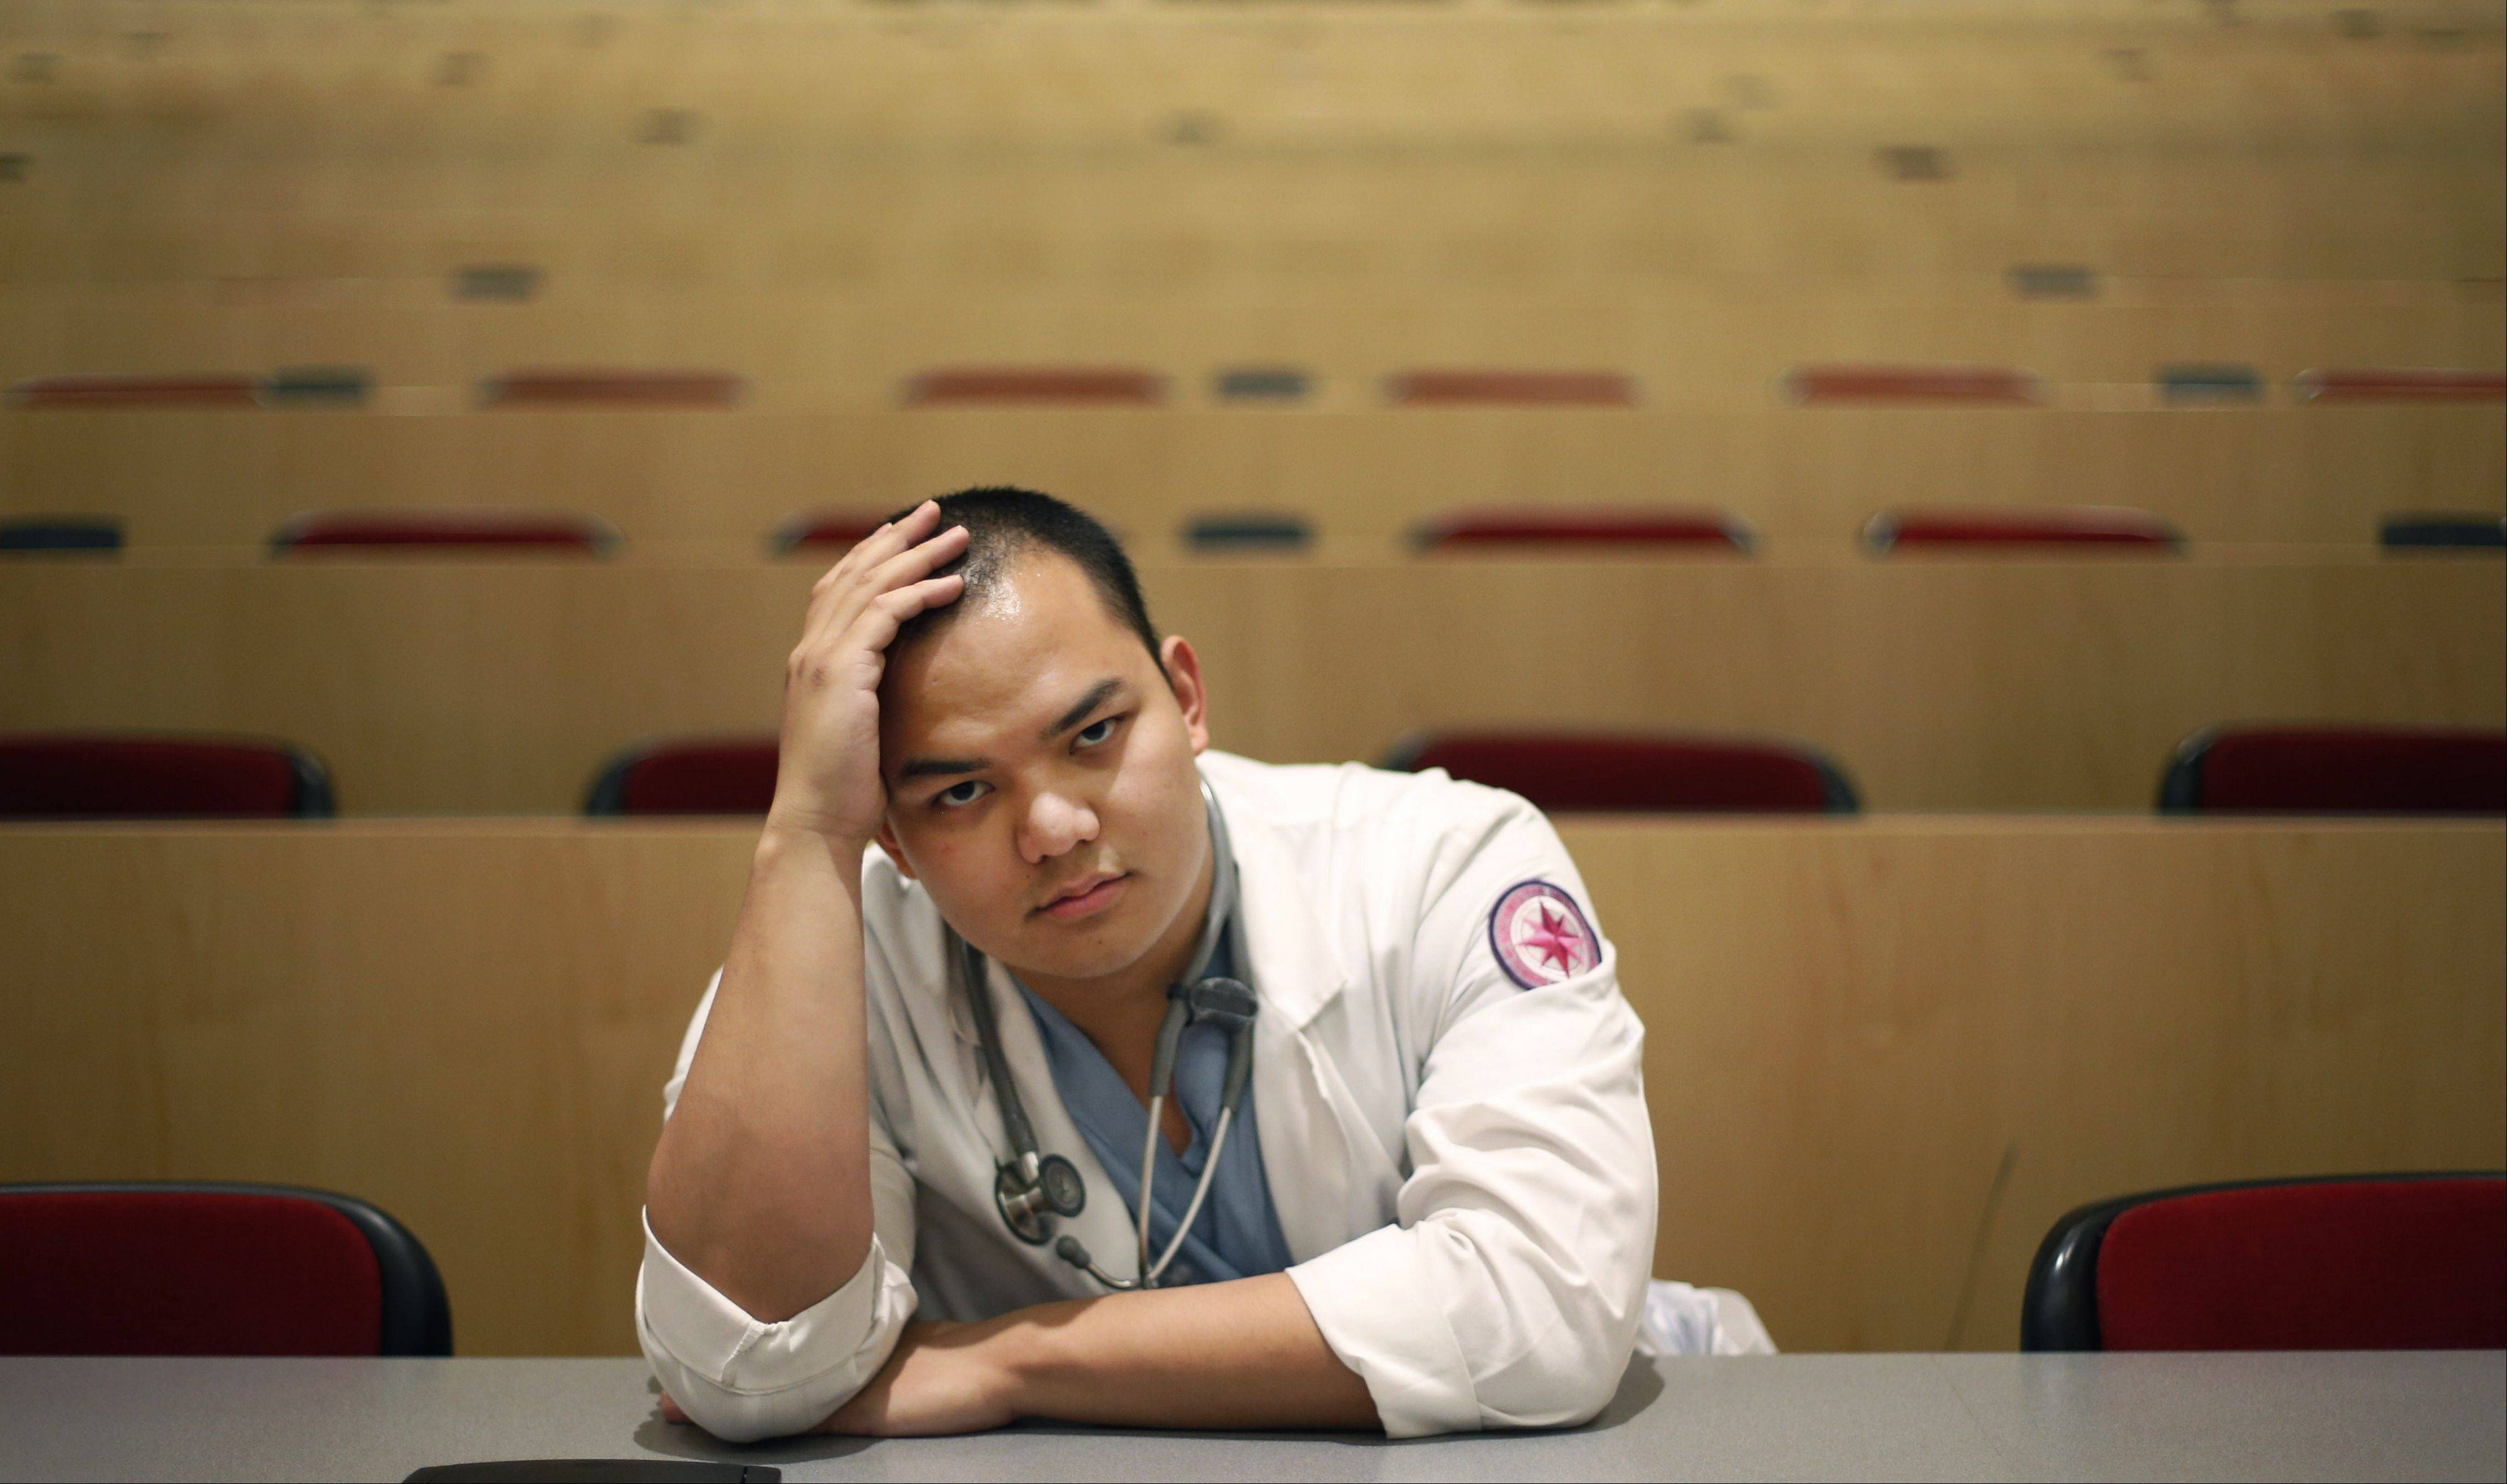 Marc Lim, a senior medical student at Northwestern University's Feinberg School of Medicine, poses in a campus classroom Tuesday in Chicago. Hundreds of medical students like Lim may not be able to start their residency programs in Illinois this summer because of imminent licensing delays.